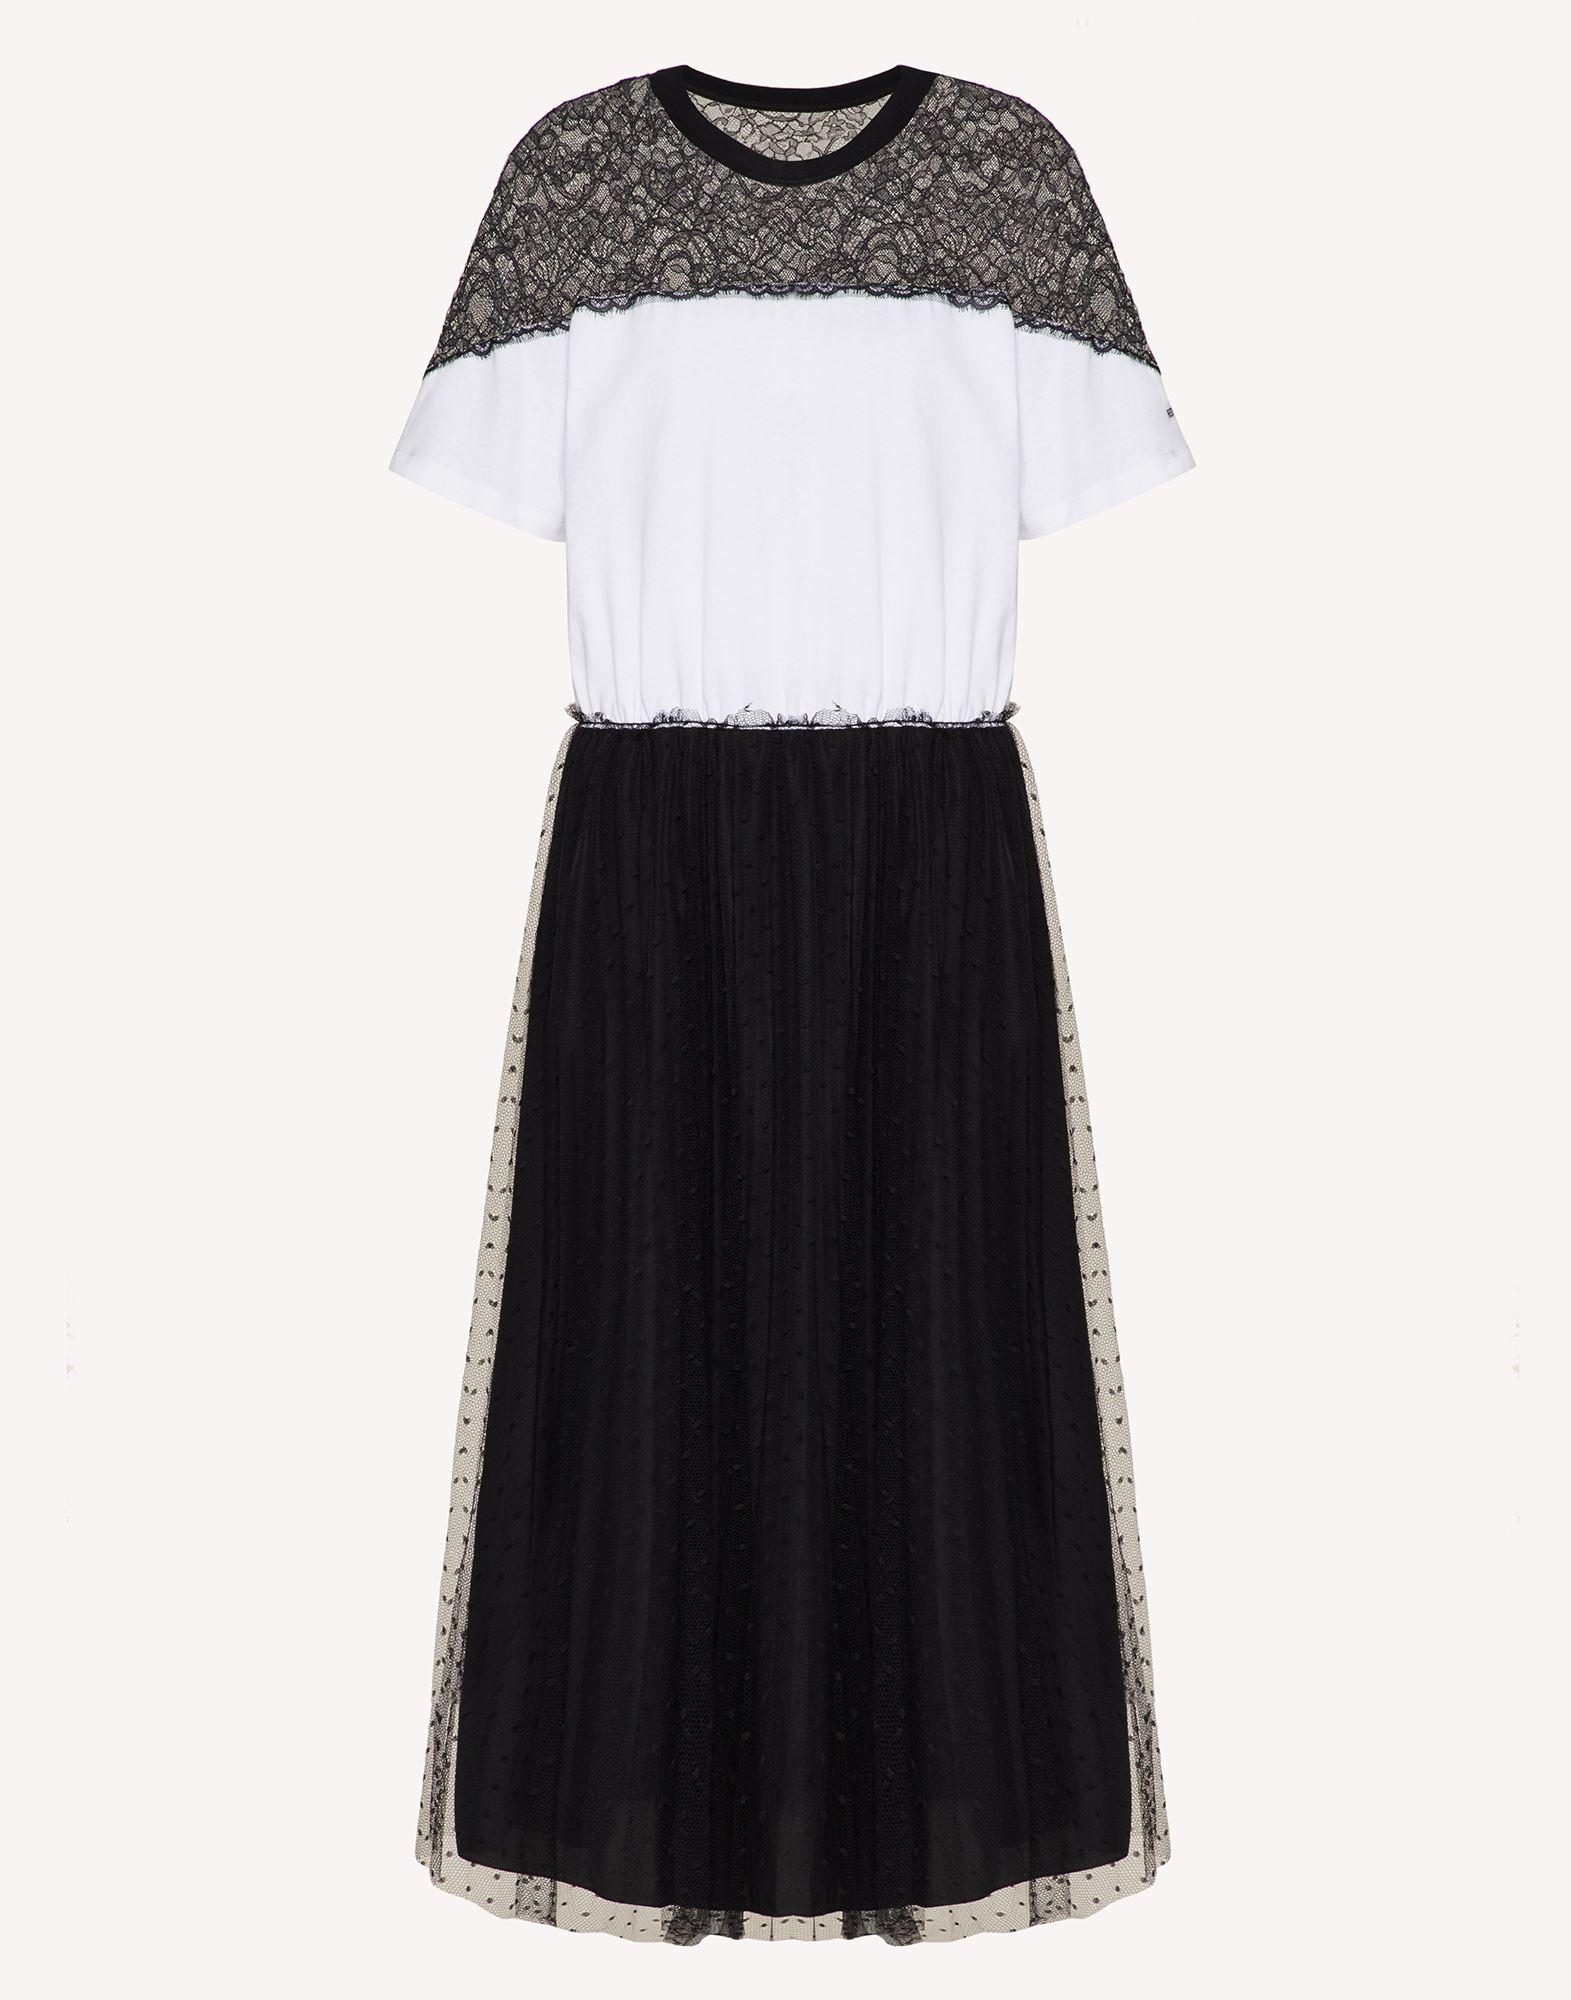 JERSEY DRESS WITH POINT D'ESPRIT TULLE AND LACE 4